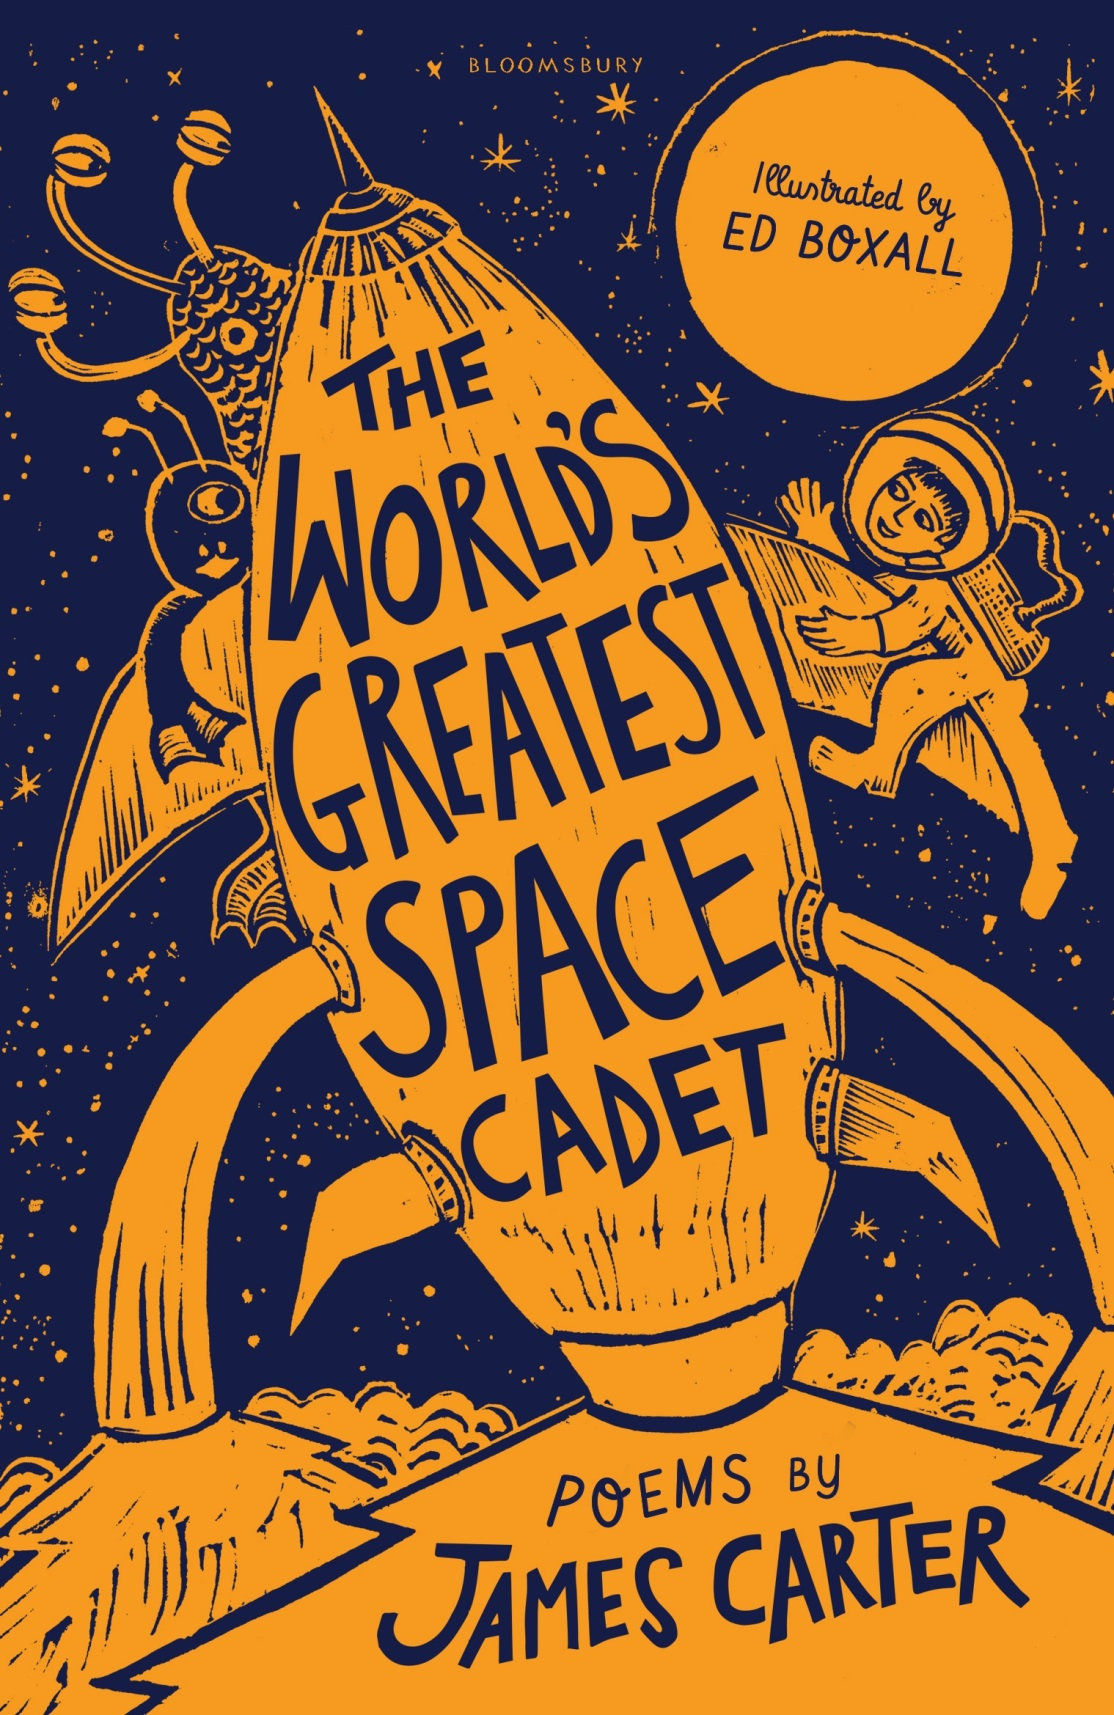 The World's Greatest Space Cadet book cover